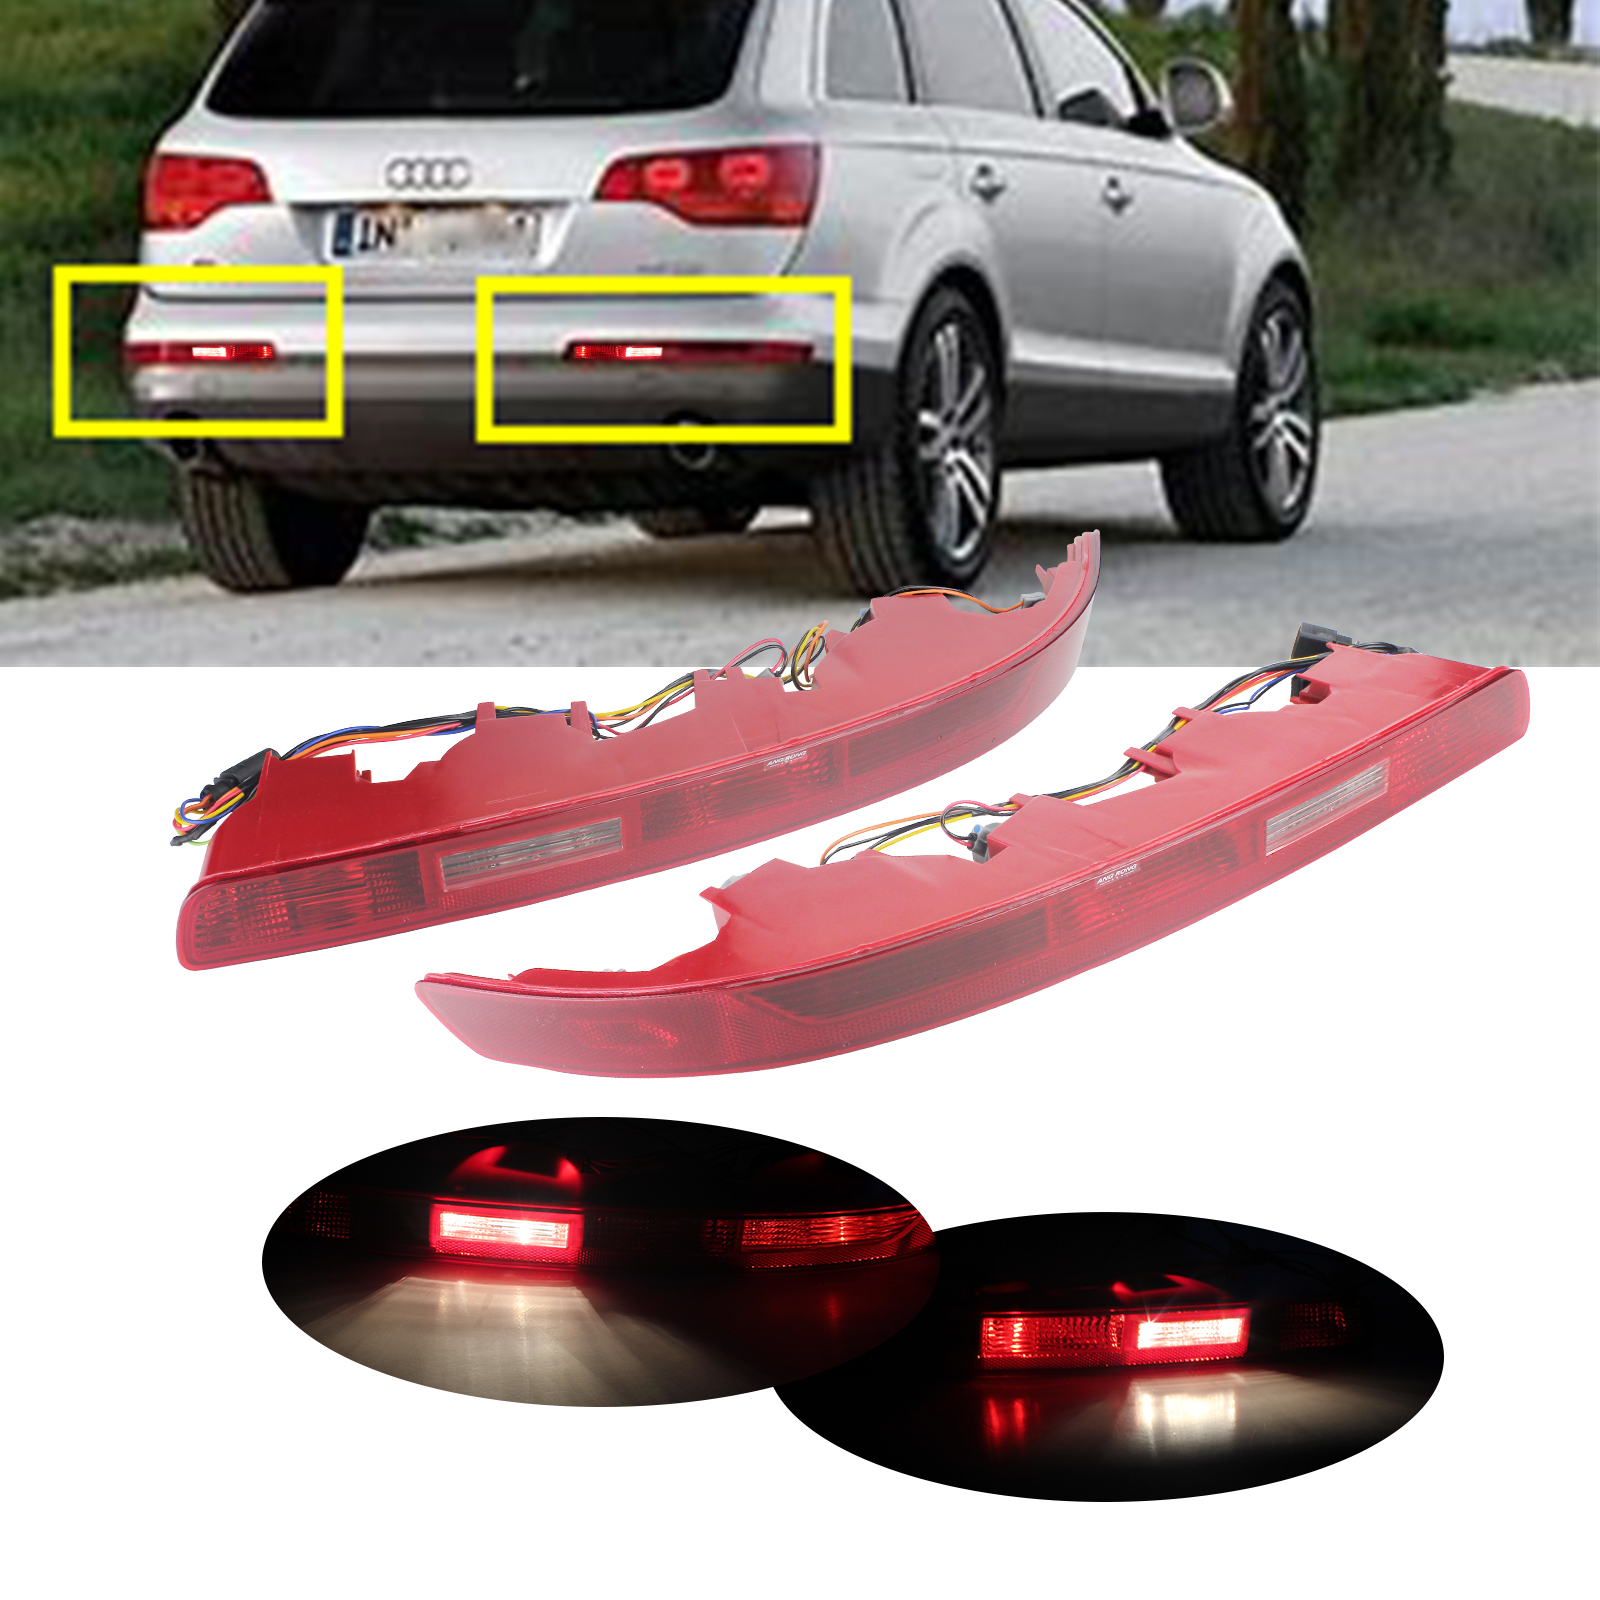 ANGRONG 2x For Audi Q7 4L 2006-2015 Rear Bumper Reflector Tail Brake Stop Light Lamps With The Halogen Bulb